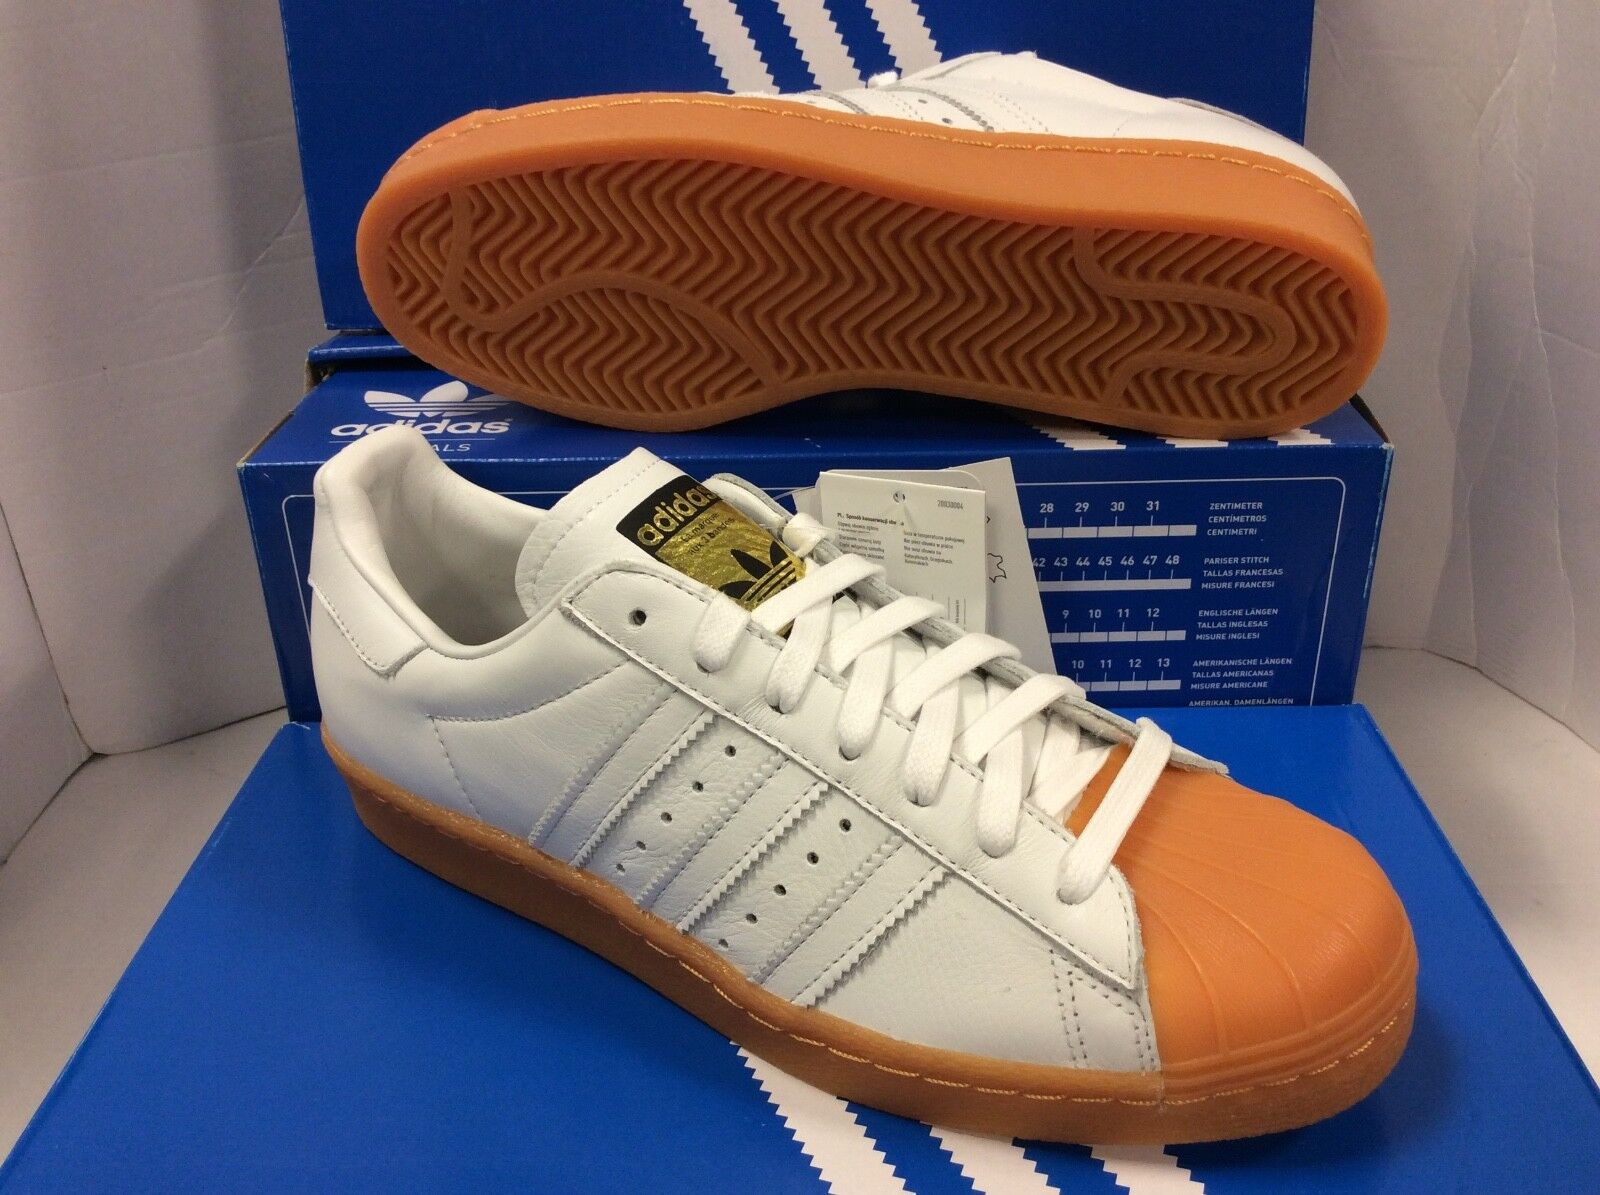 finest selection 2acf9 06f76 ADIDAS Originals Hommes Superstar 80s DLX S75830 Hommes Originals Trainers,  0ef2b8